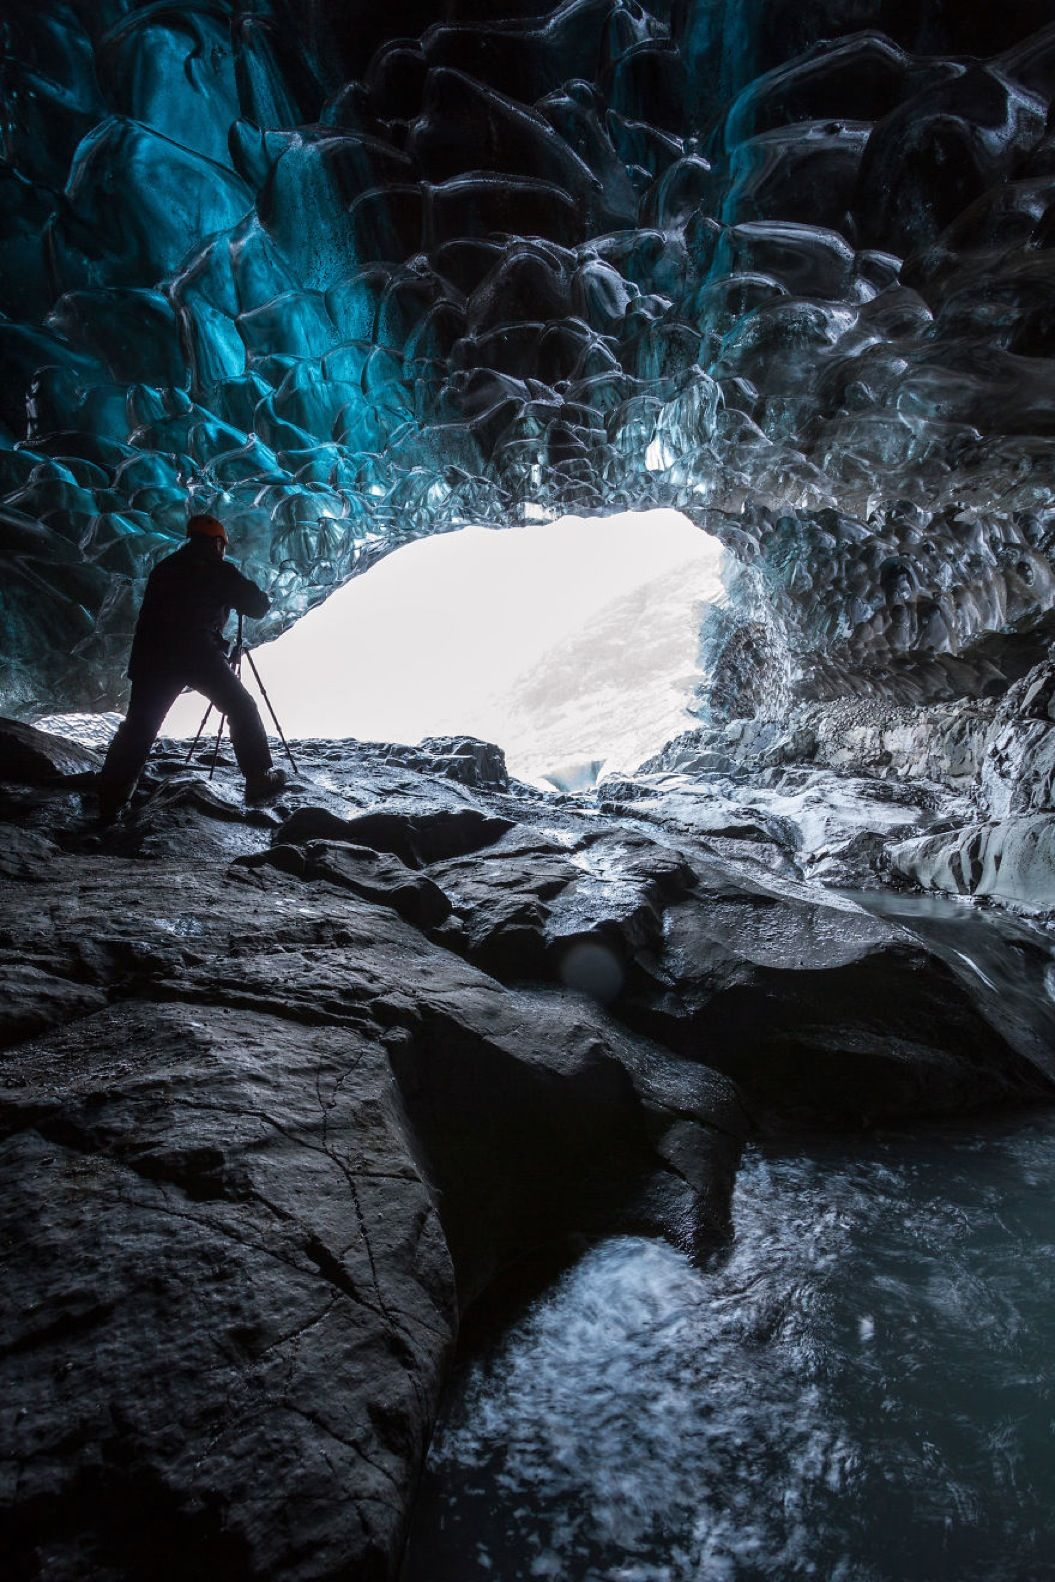 85singo_I-finally-visited-the-ice-caves-in-Iceland22__880